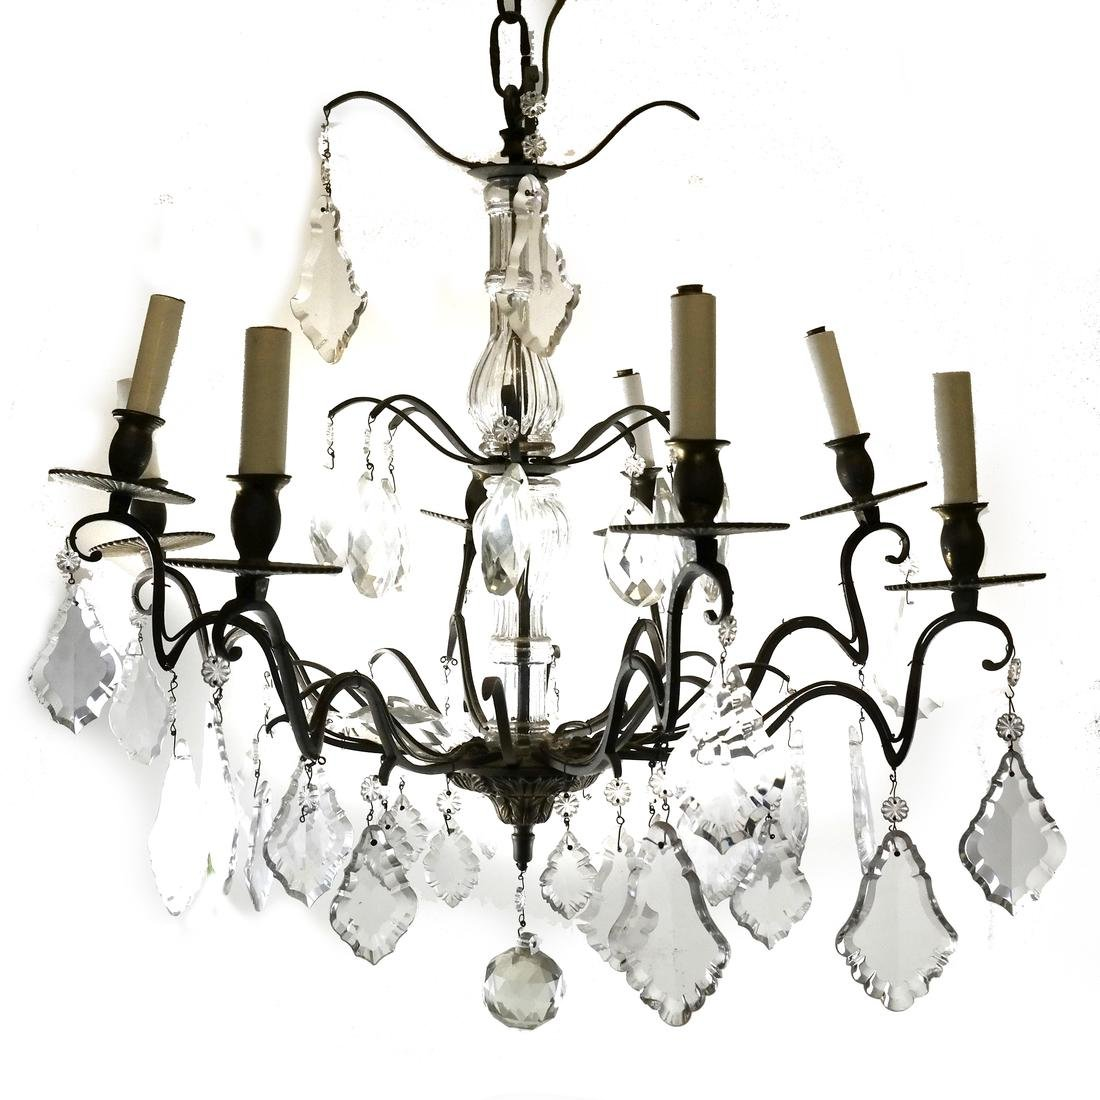 8-Light Brass and Glass Chandelier